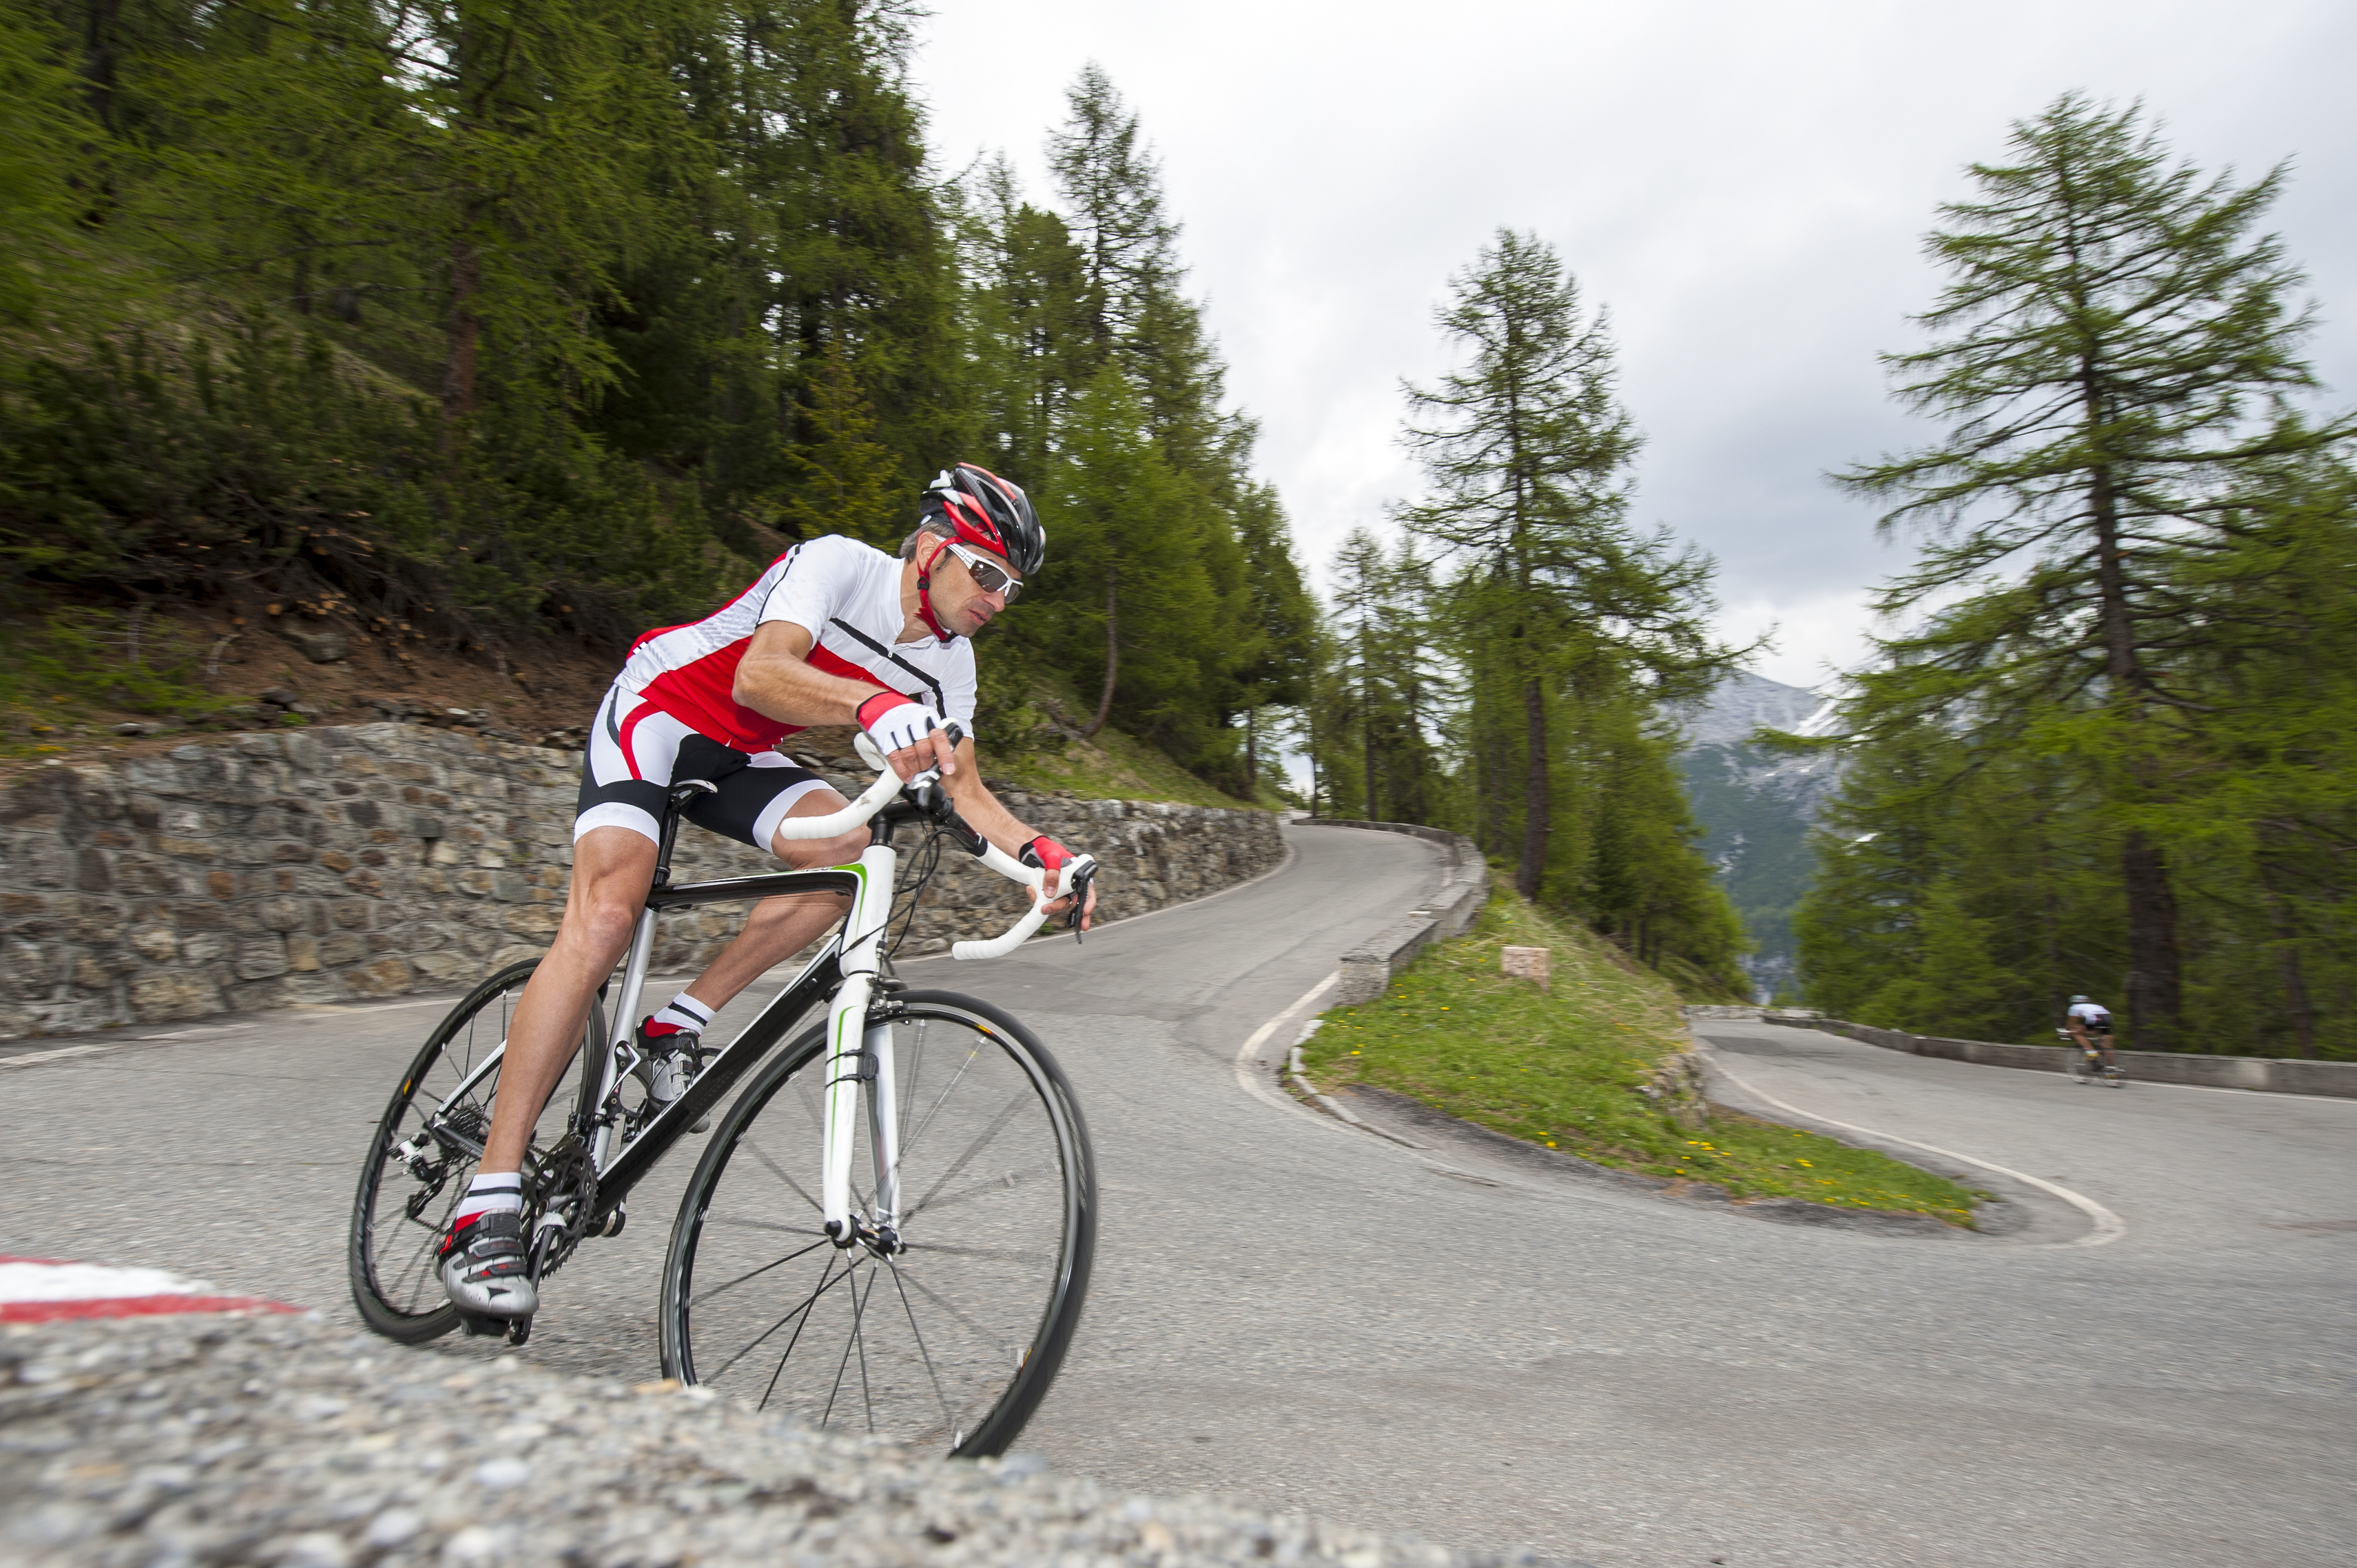 Road_Cyclist_on_hairpin_bend.jpg